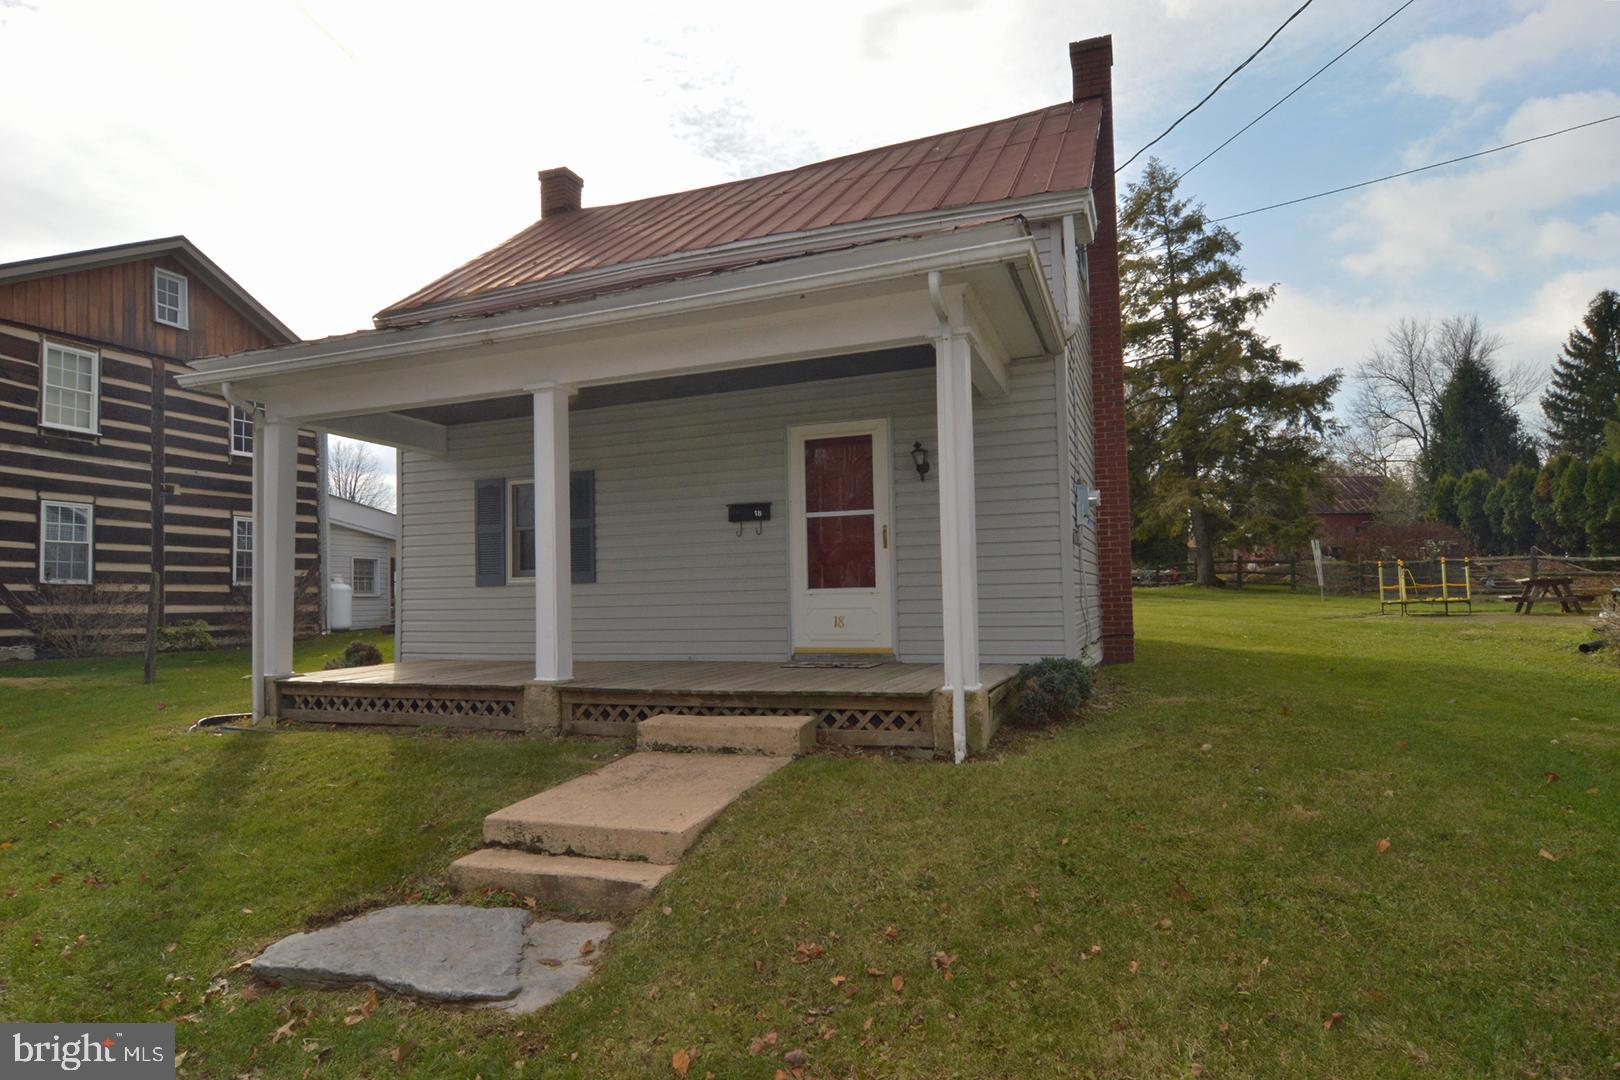 18 MAIN STREET, WOMELSDORF, PA 19567